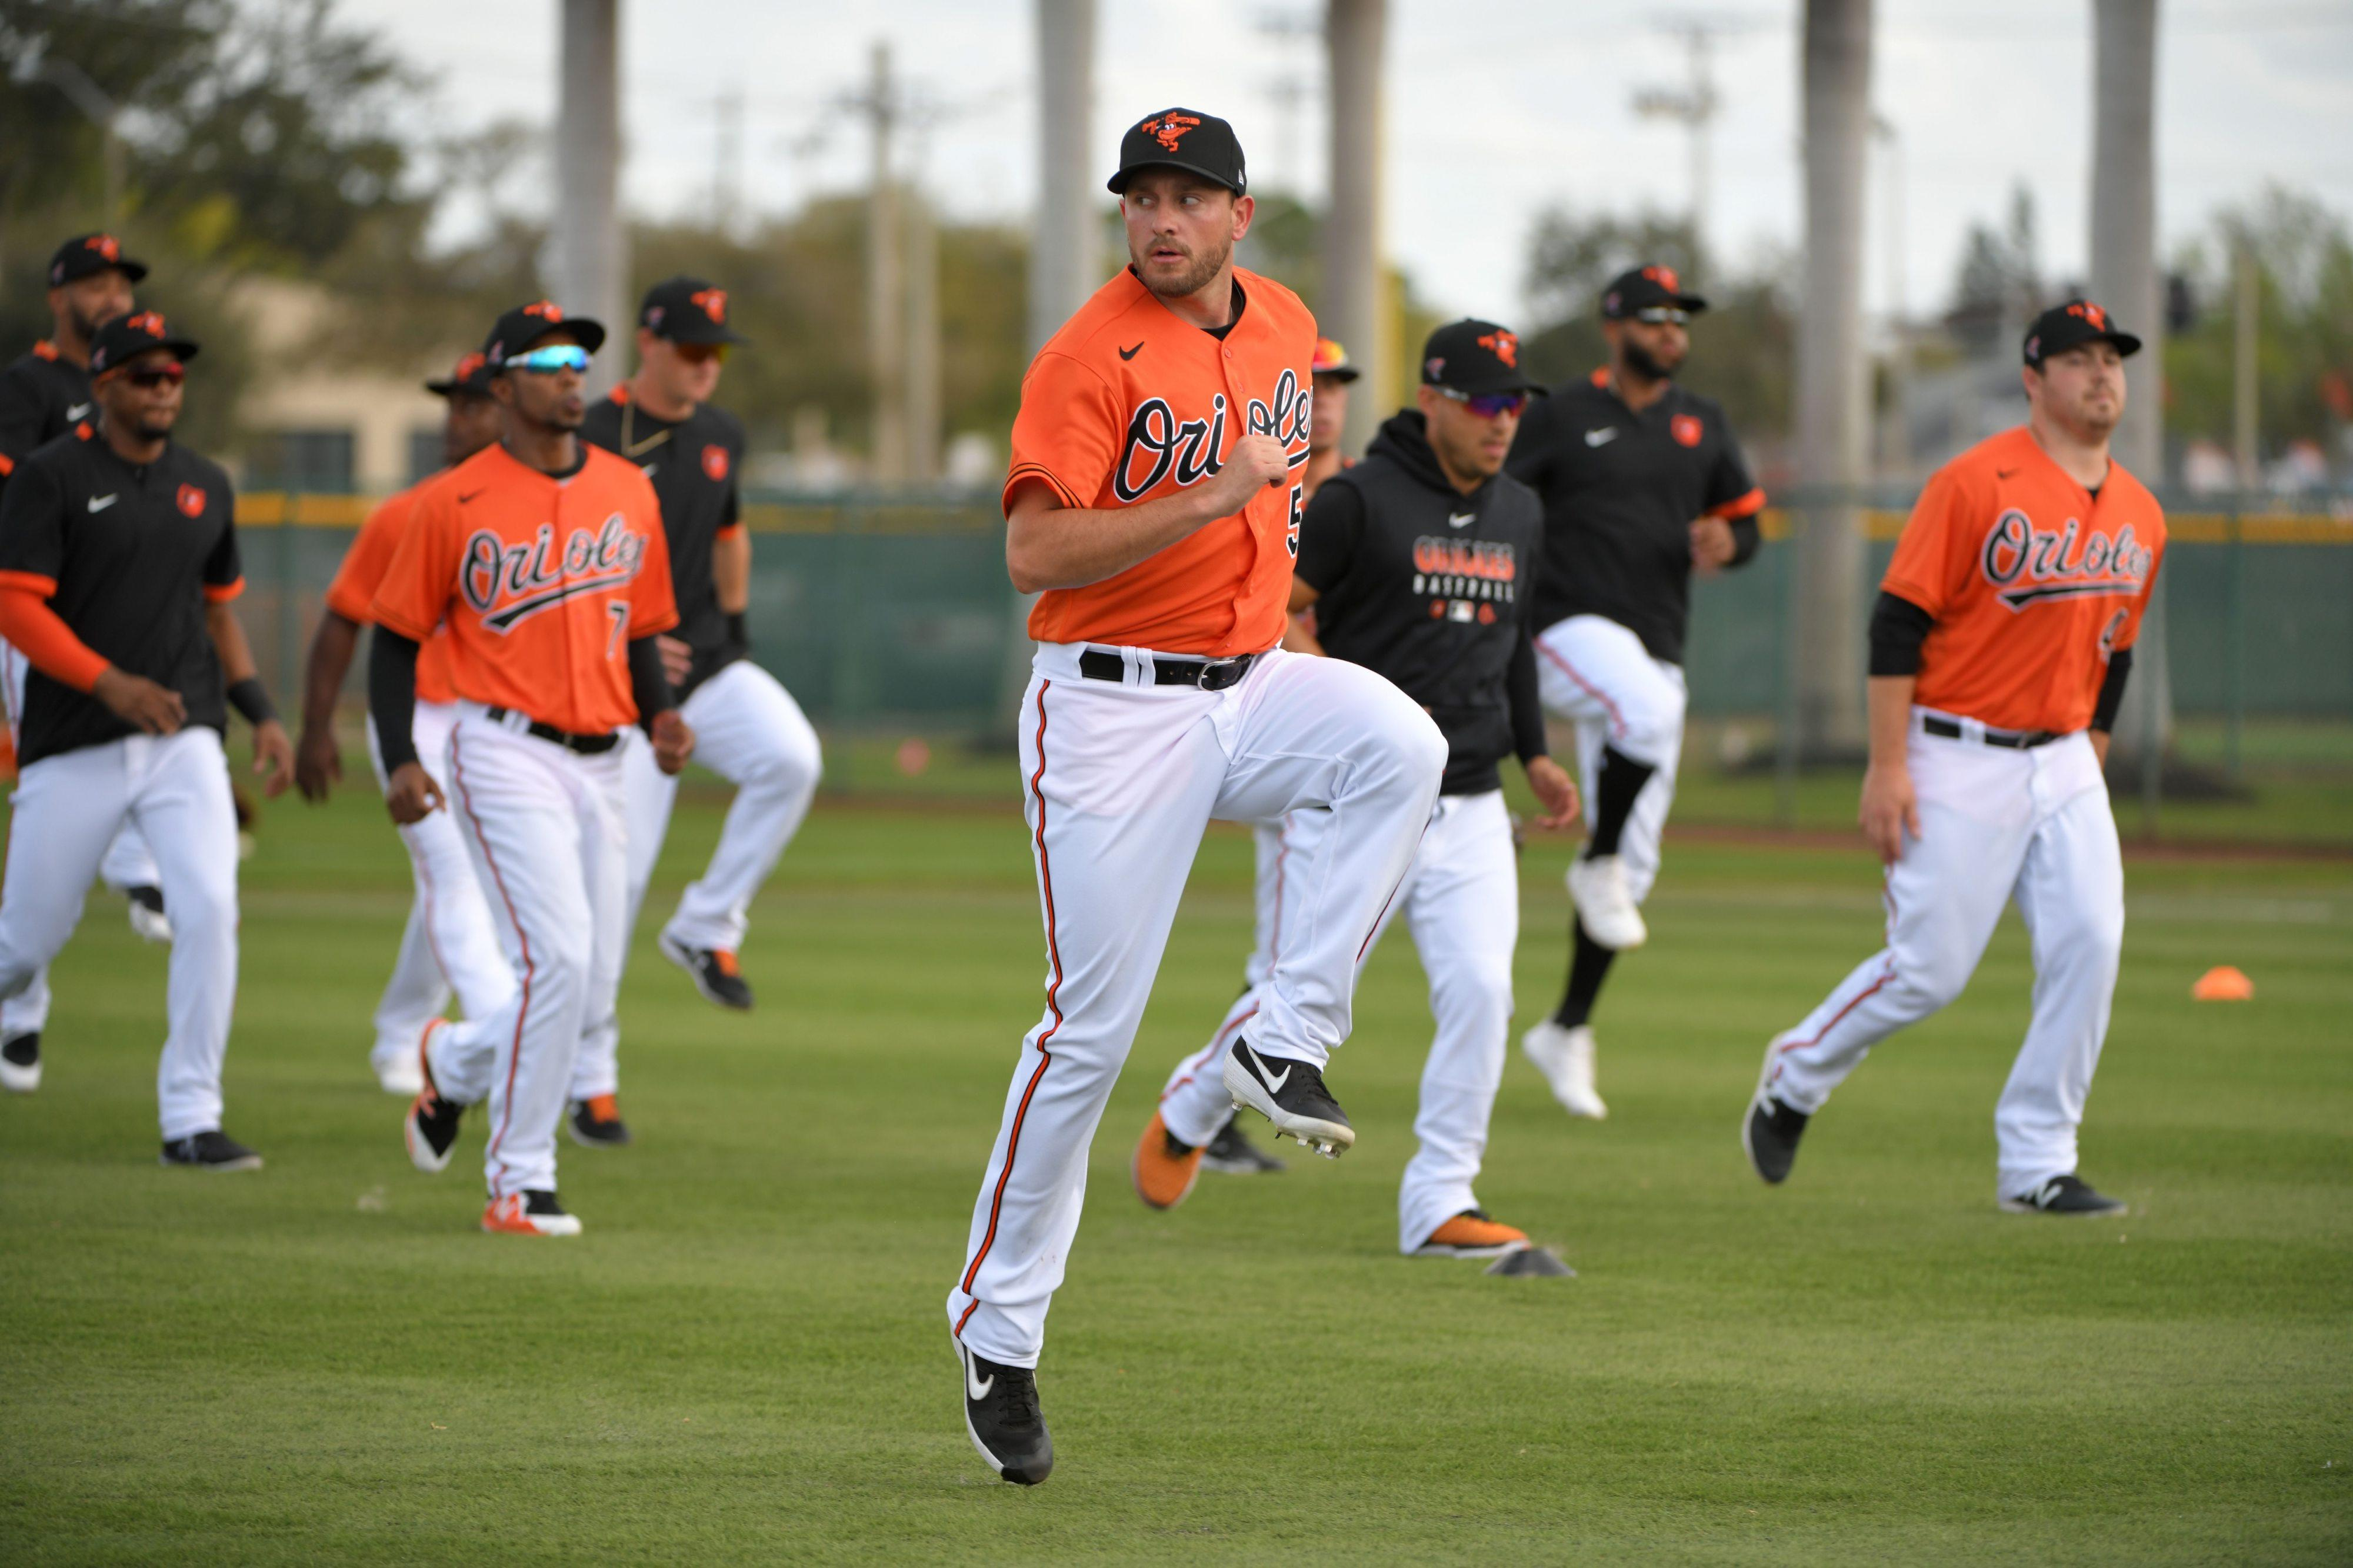 Cole Sulser, the Orioles' 30-year-old rookie reliever, gaining trust with 'gutsy' outings as closer